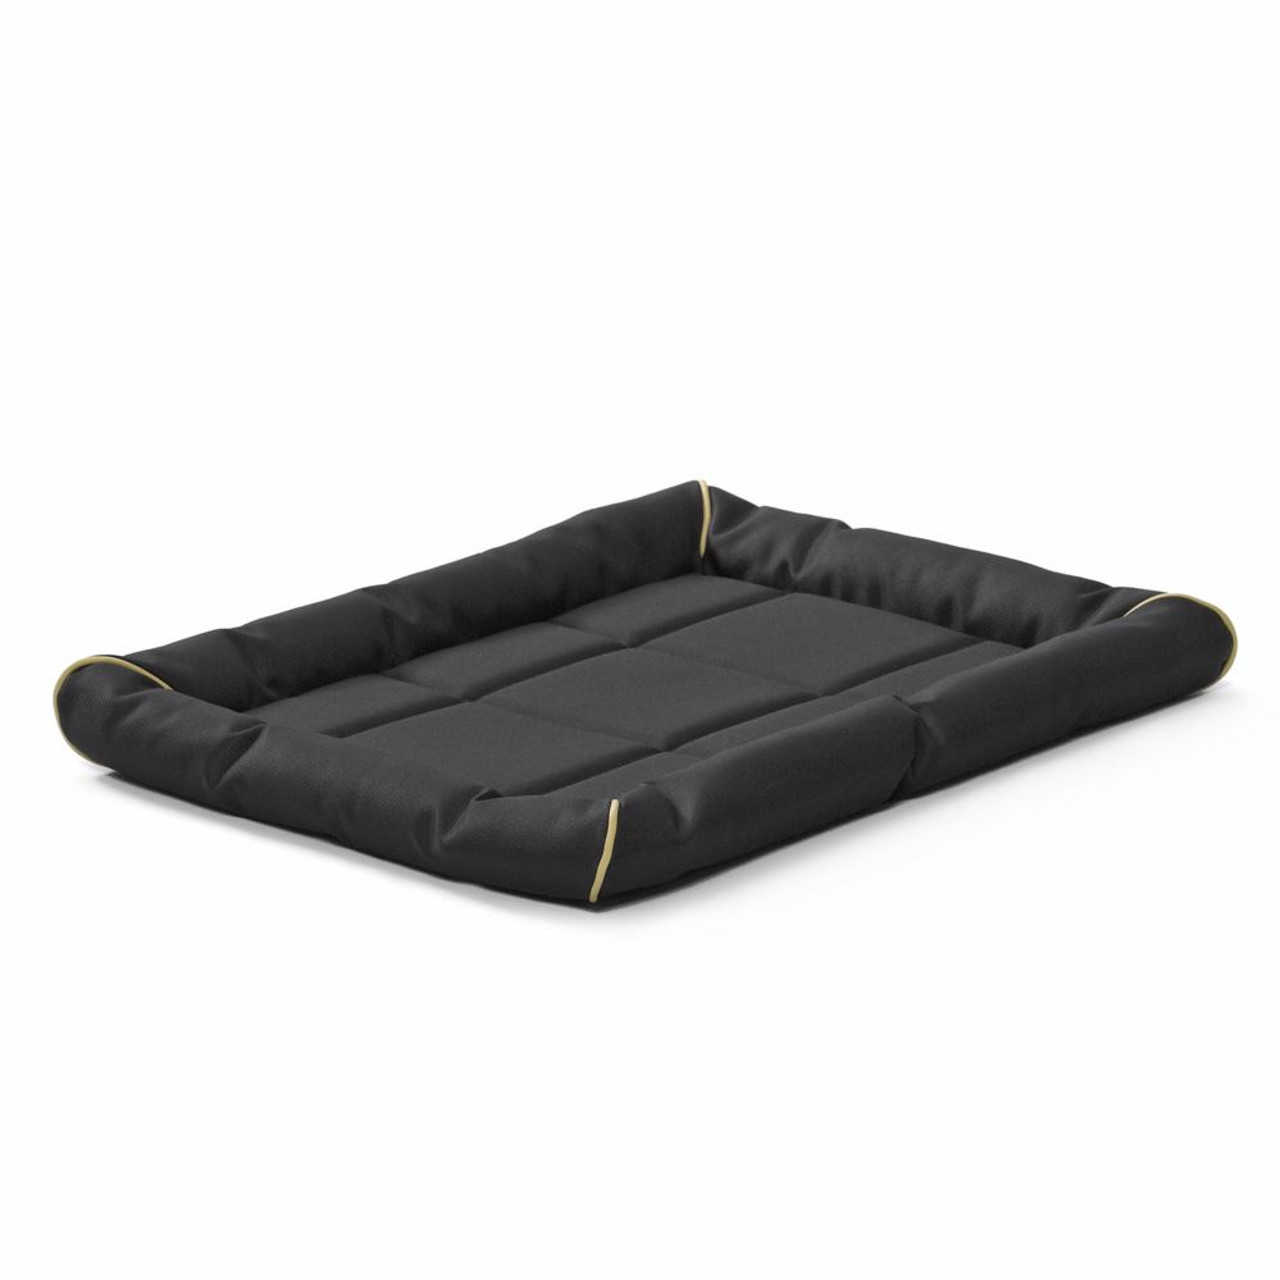 MidWest QuietTime MAXX Black Pet Bed for Dogs & Cats